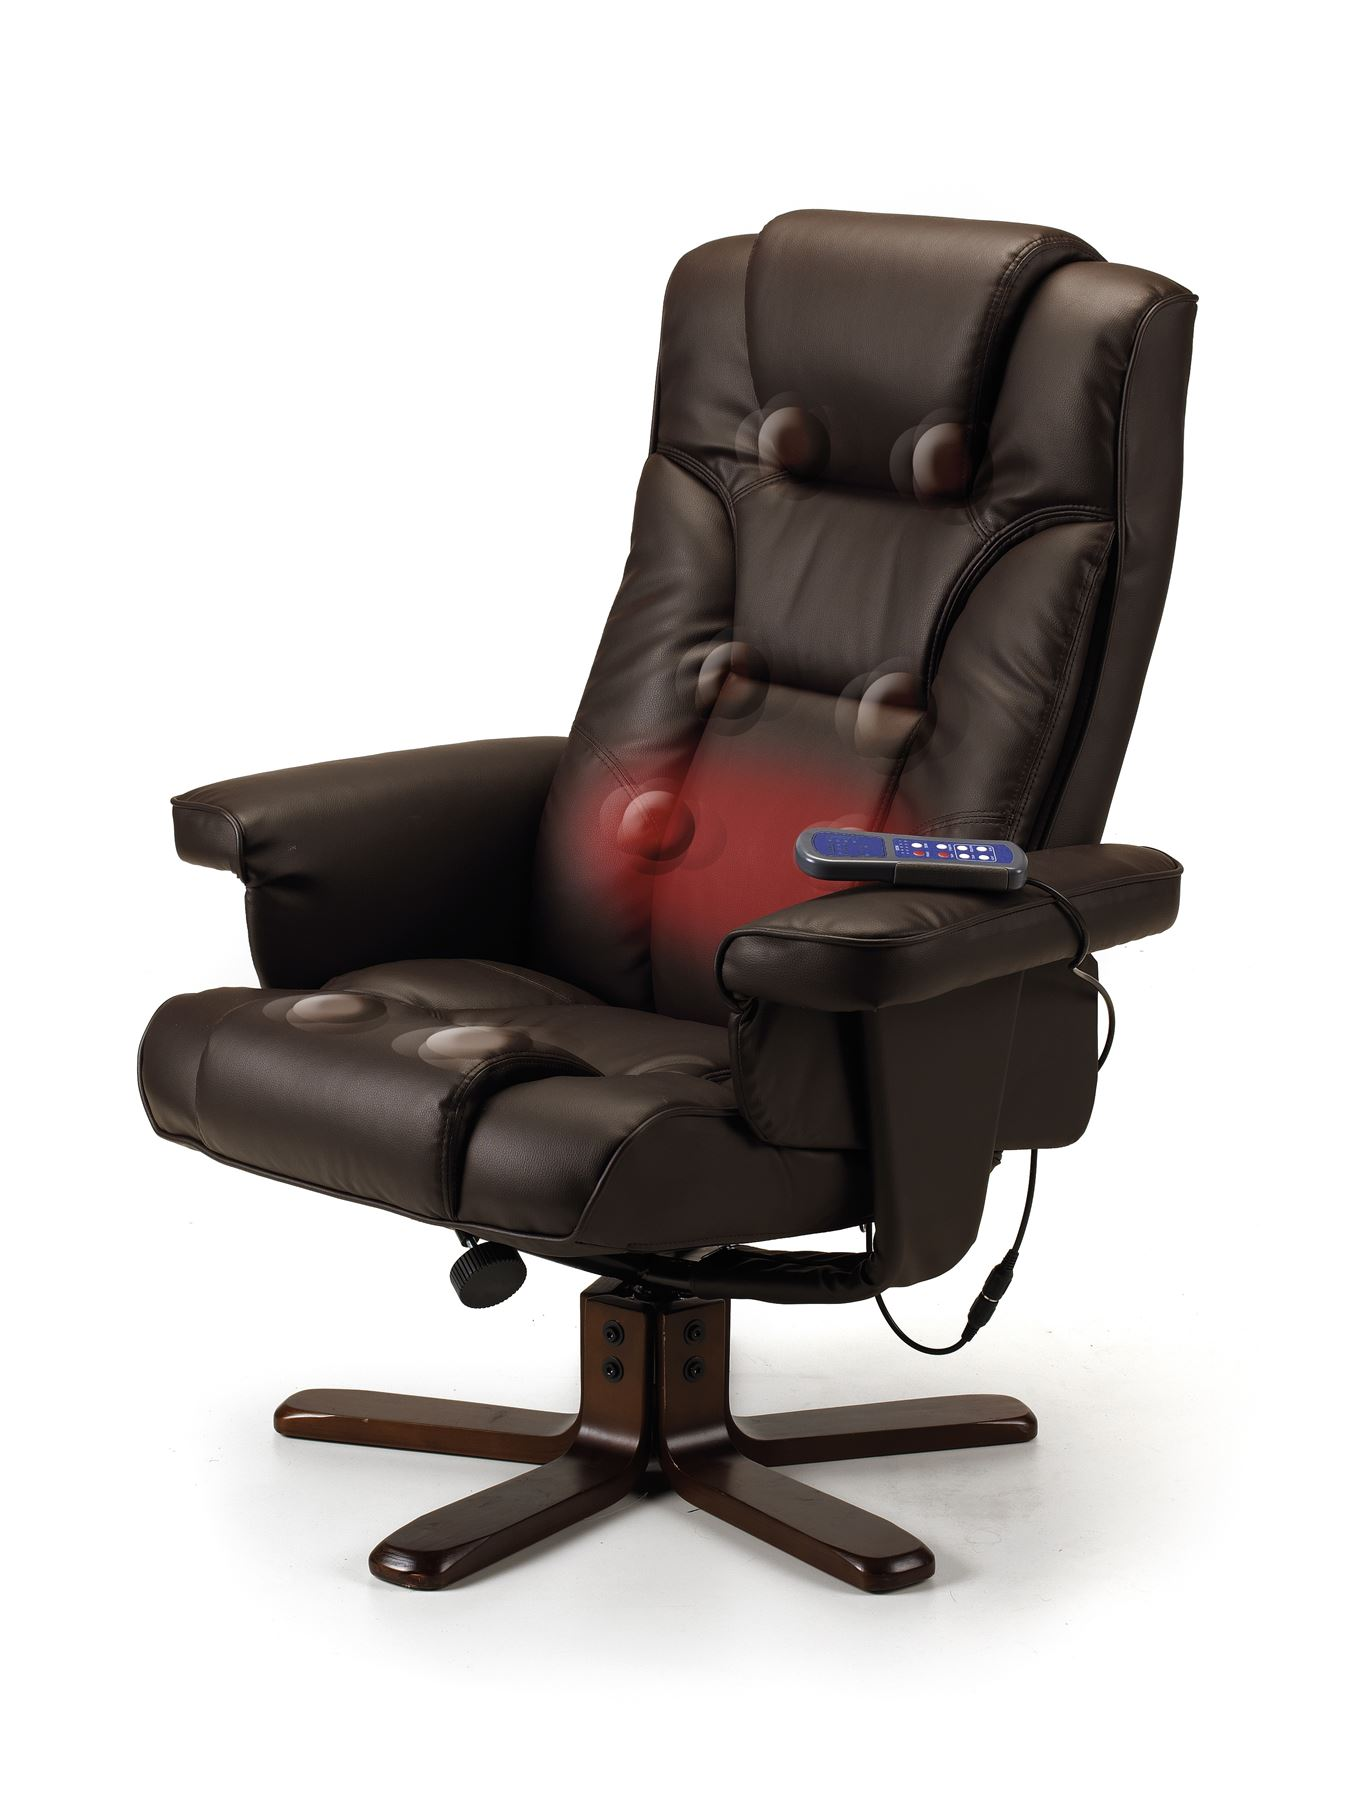 Julian Bowen Malmo Electric Heat Massage Manual Recliner Stool Brown Faux Leather